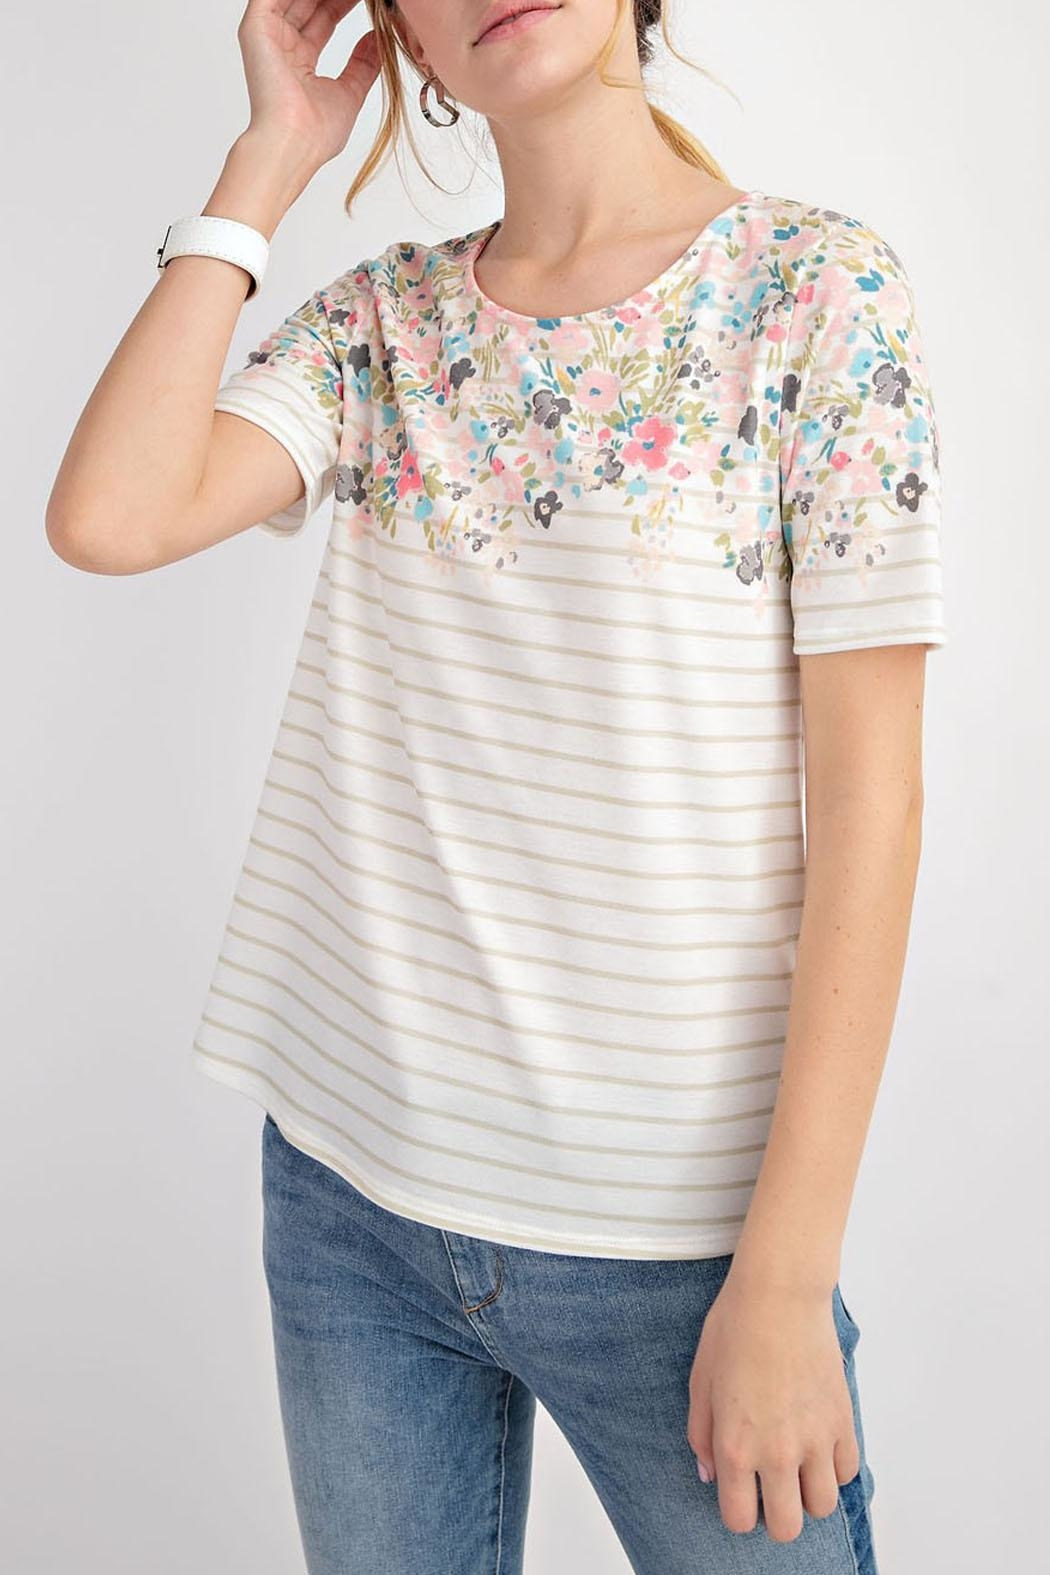 12pm by Mon Ami Floral Taupe Top - Front Full Image